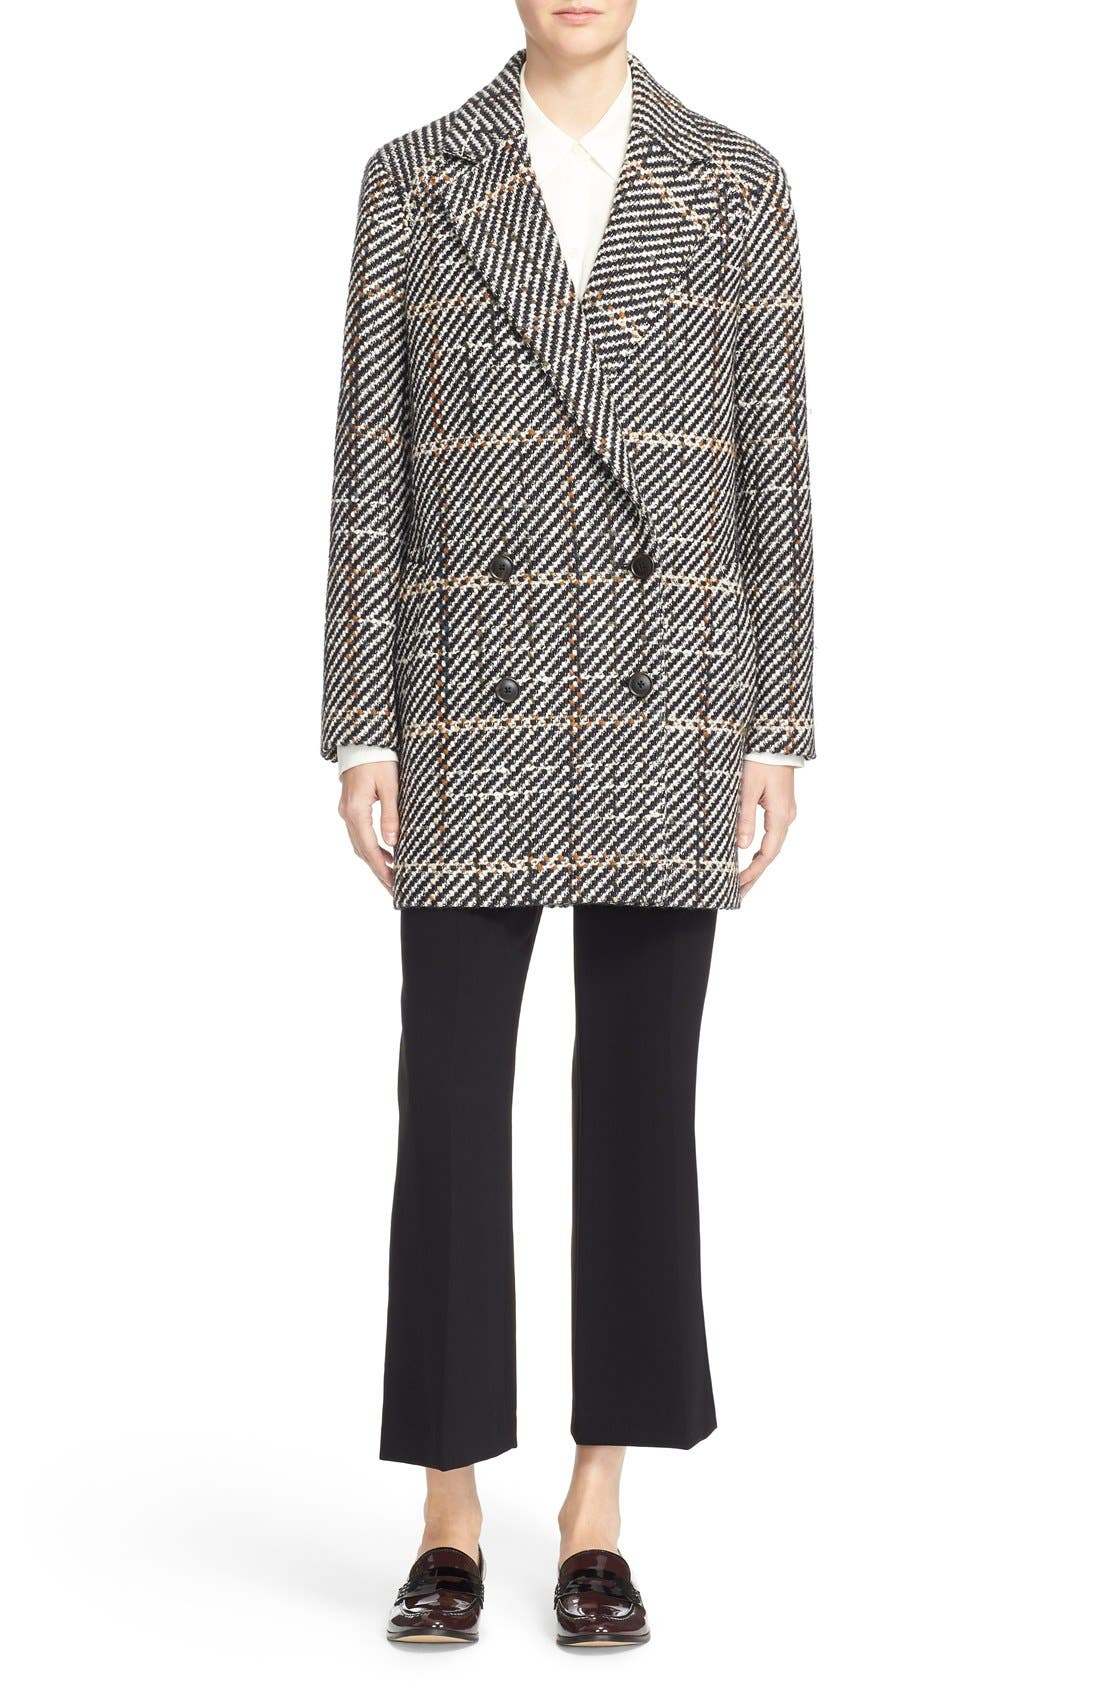 THEORY, Graphic Tweed Coat, Alternate thumbnail 6, color, 454